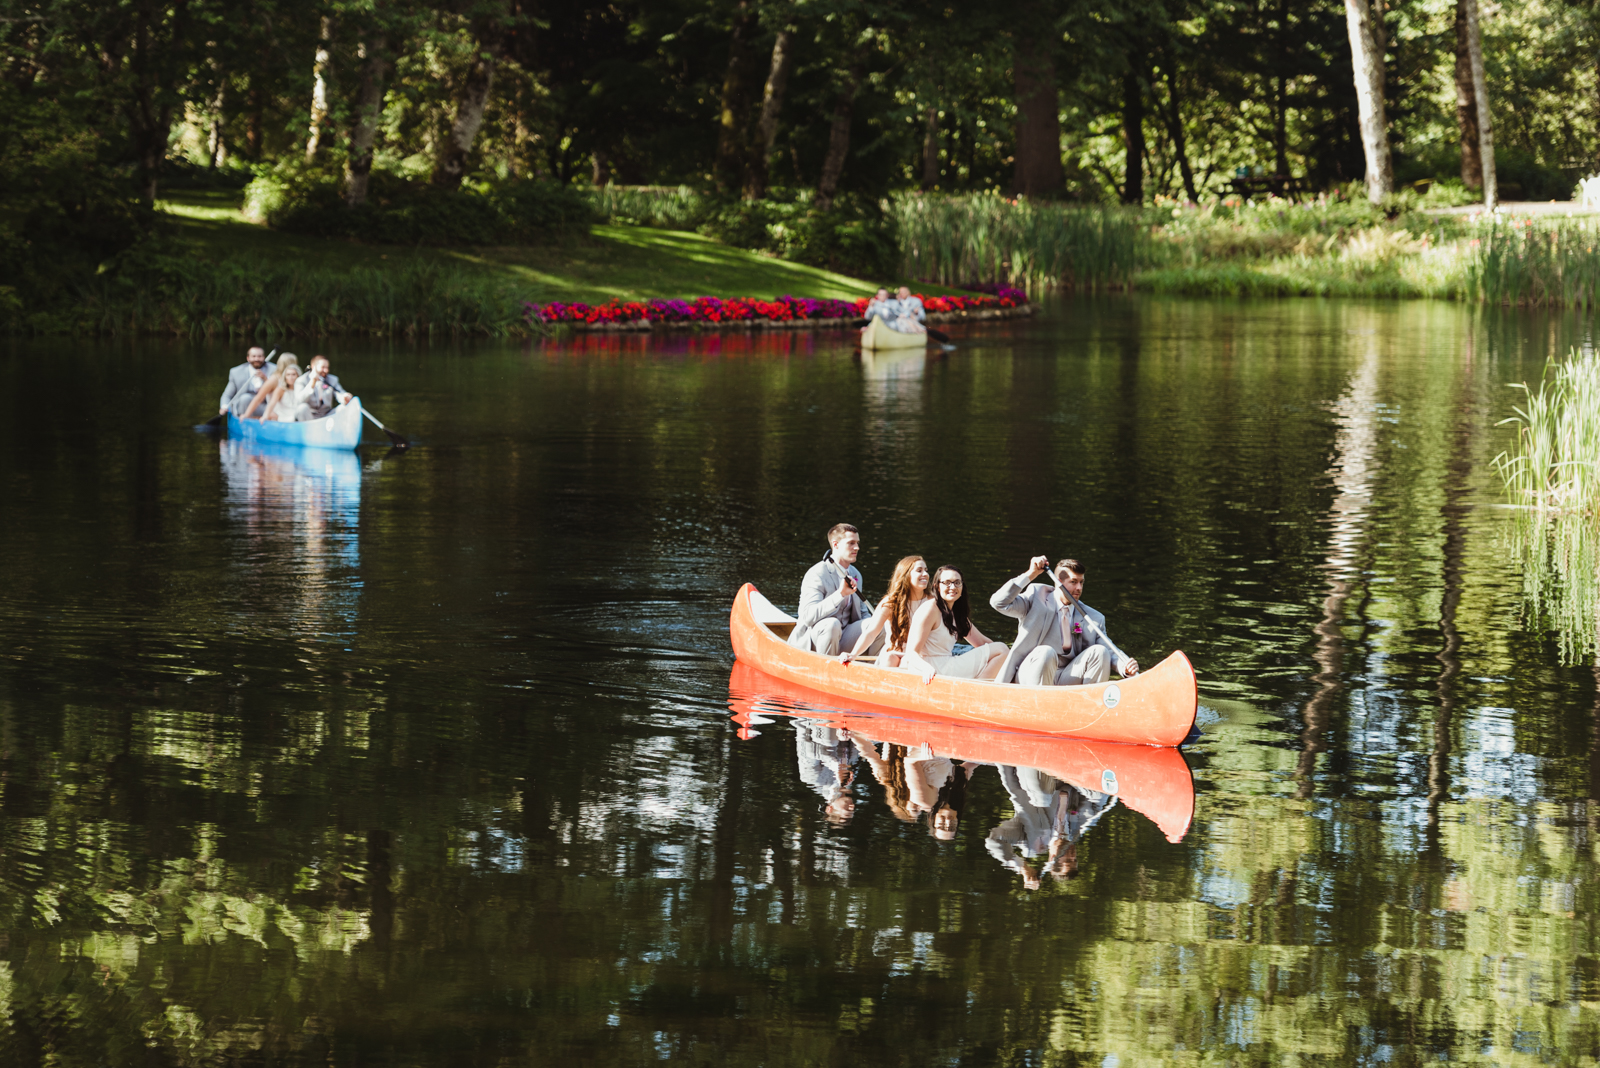 Bridal party arrives by canoe